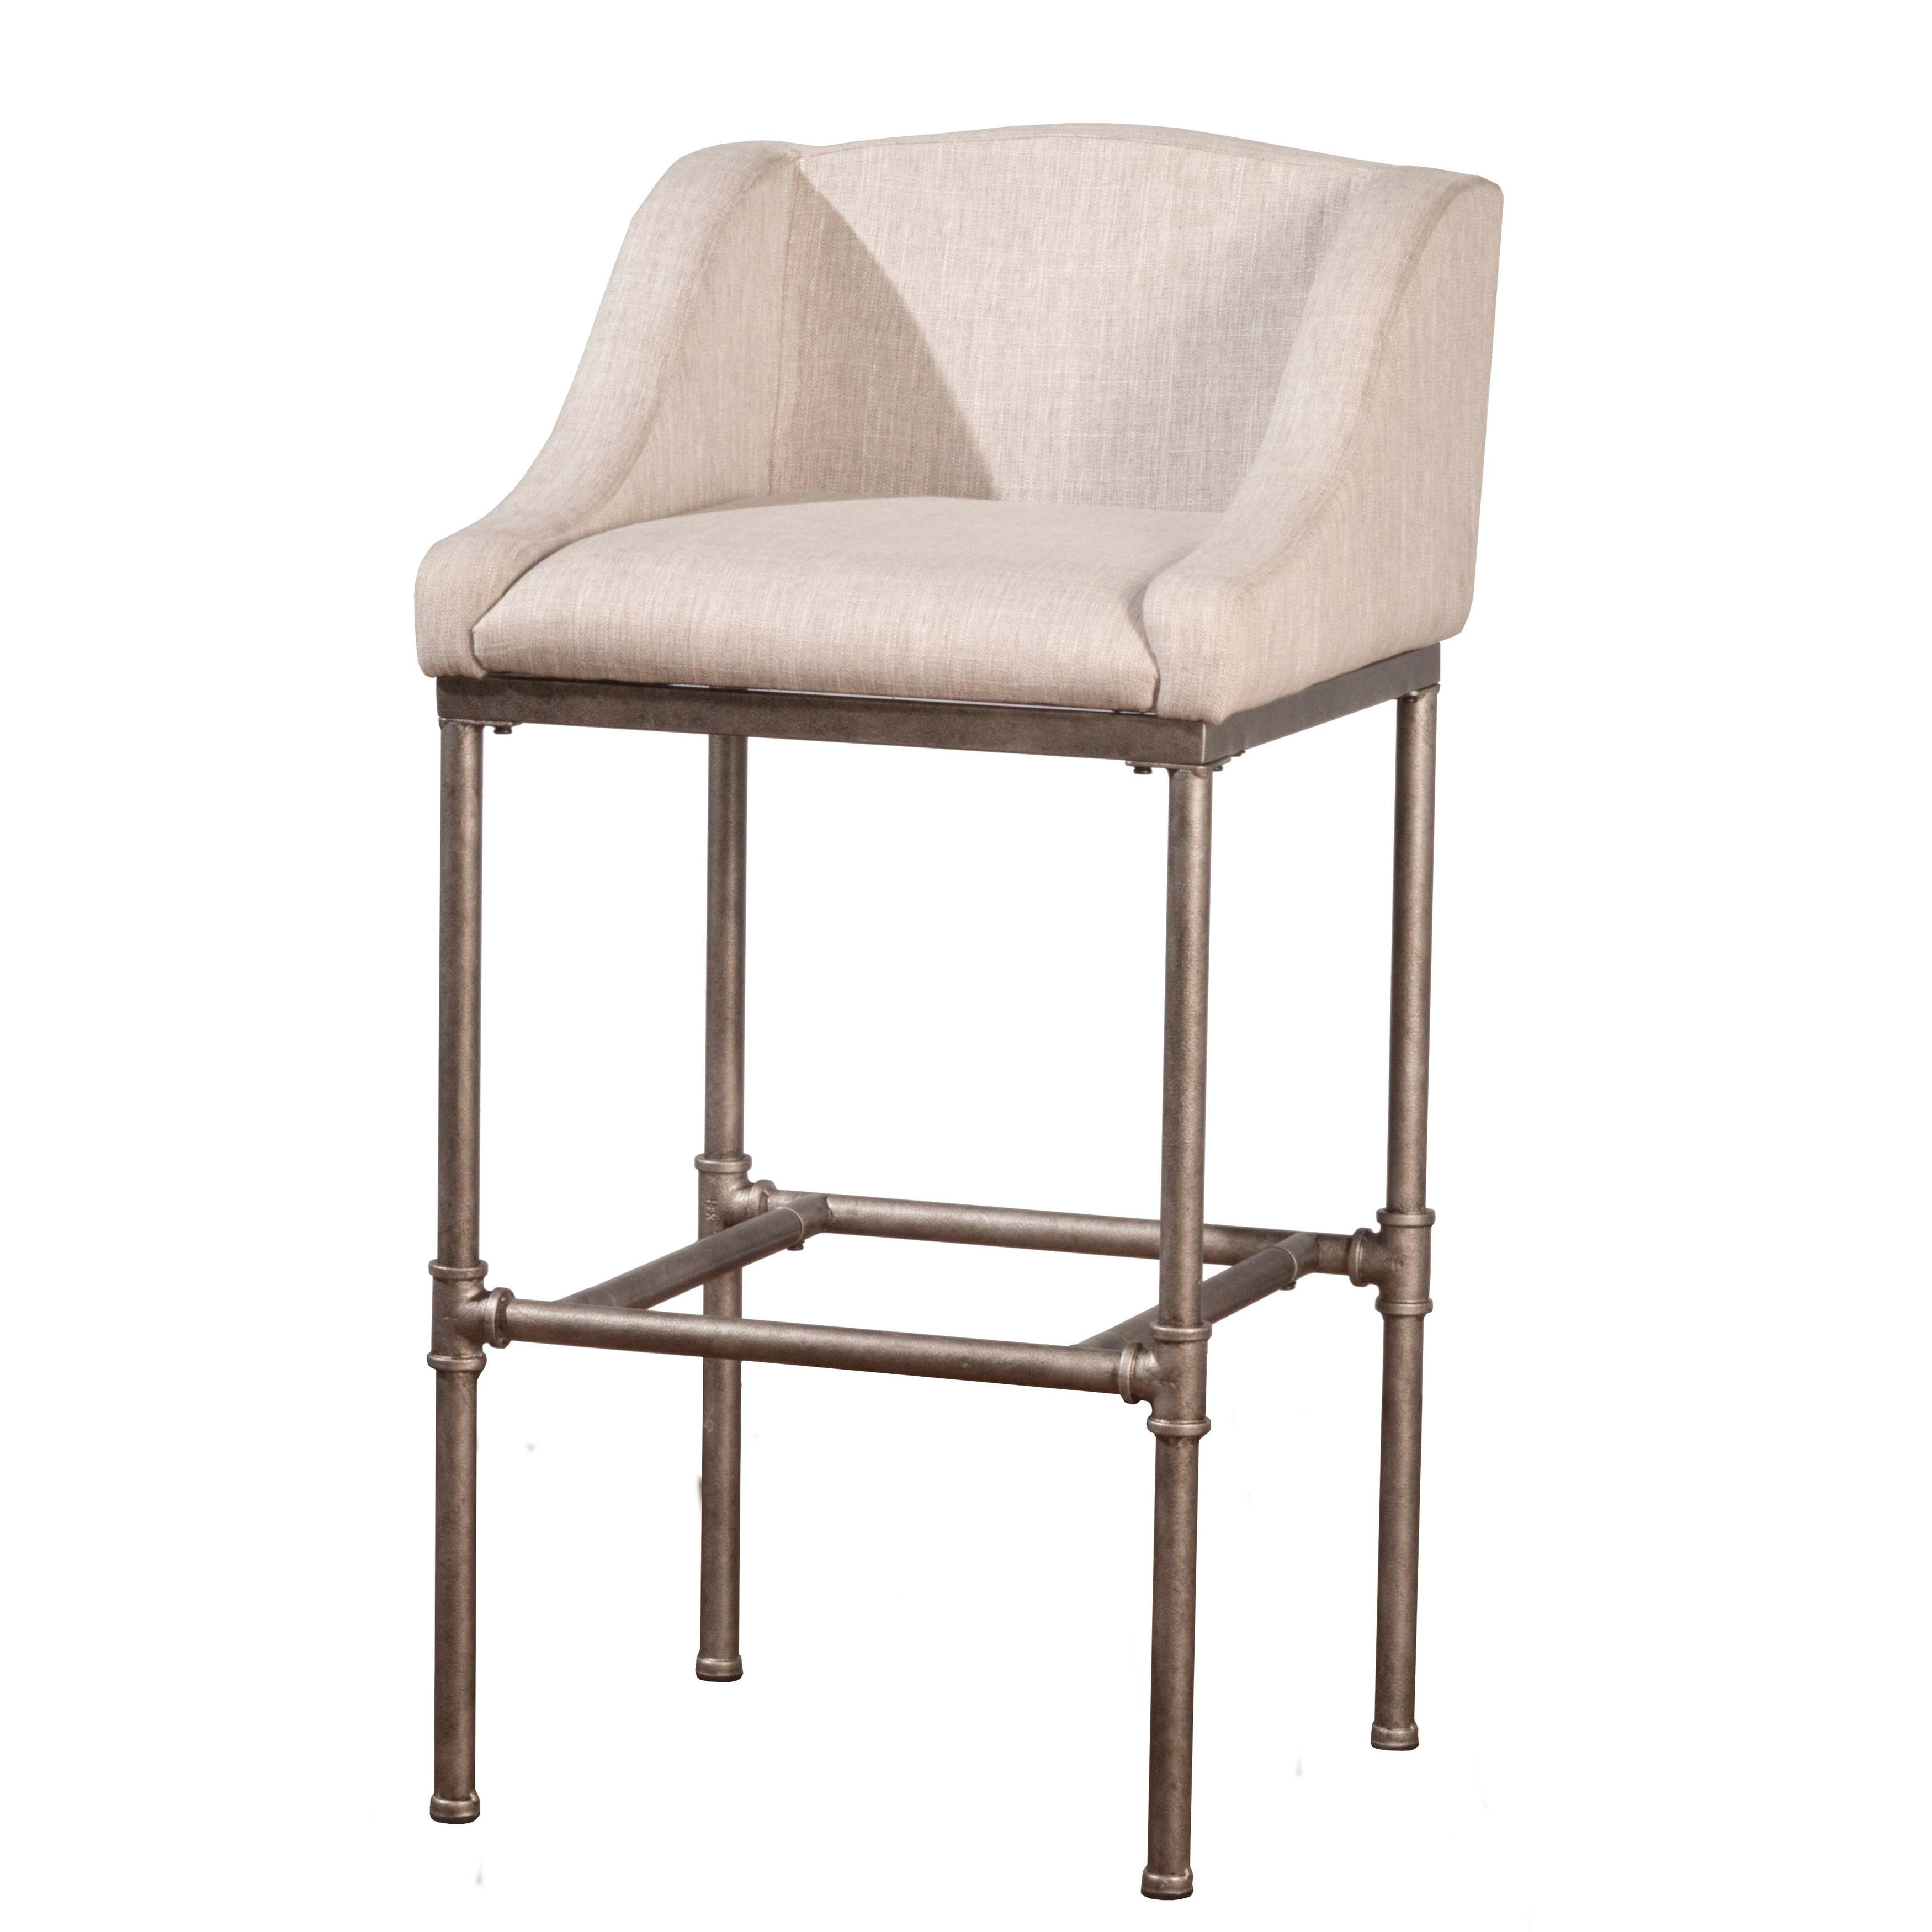 Shop hillsdale furniture dillion non swivel bar stool in textured silver on sale free shipping today overstock com 16289143